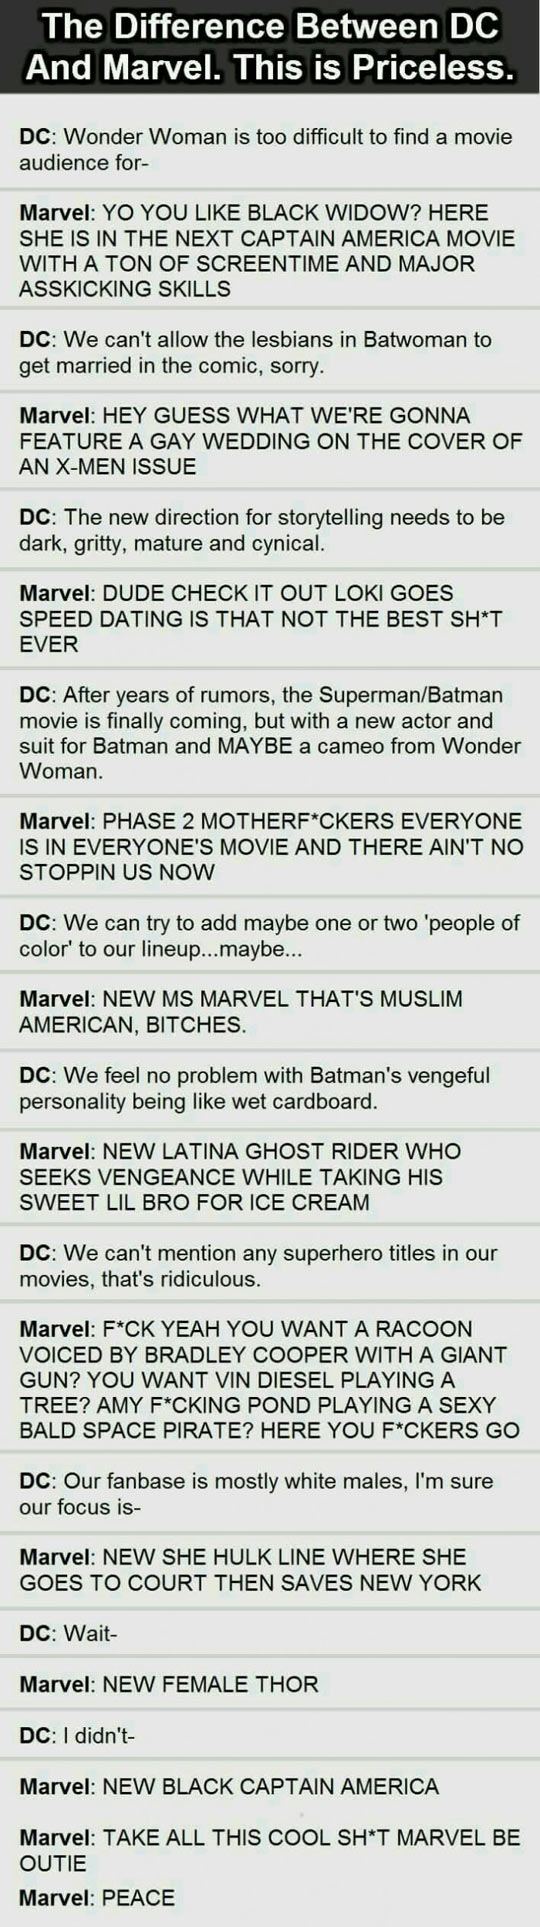 The Difference Between DC And Marvel